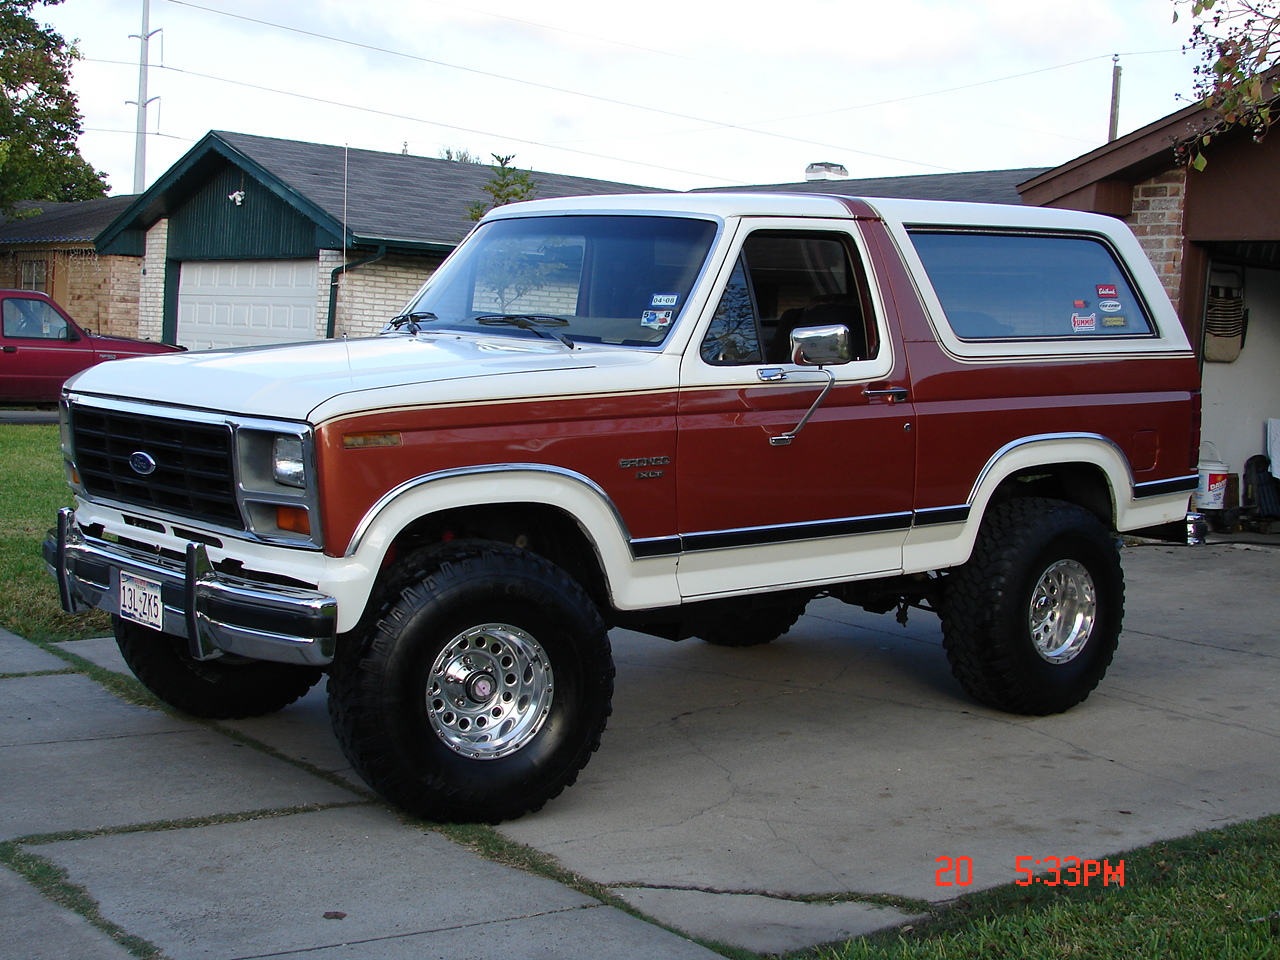 Ford bronco 1975 photo - 8